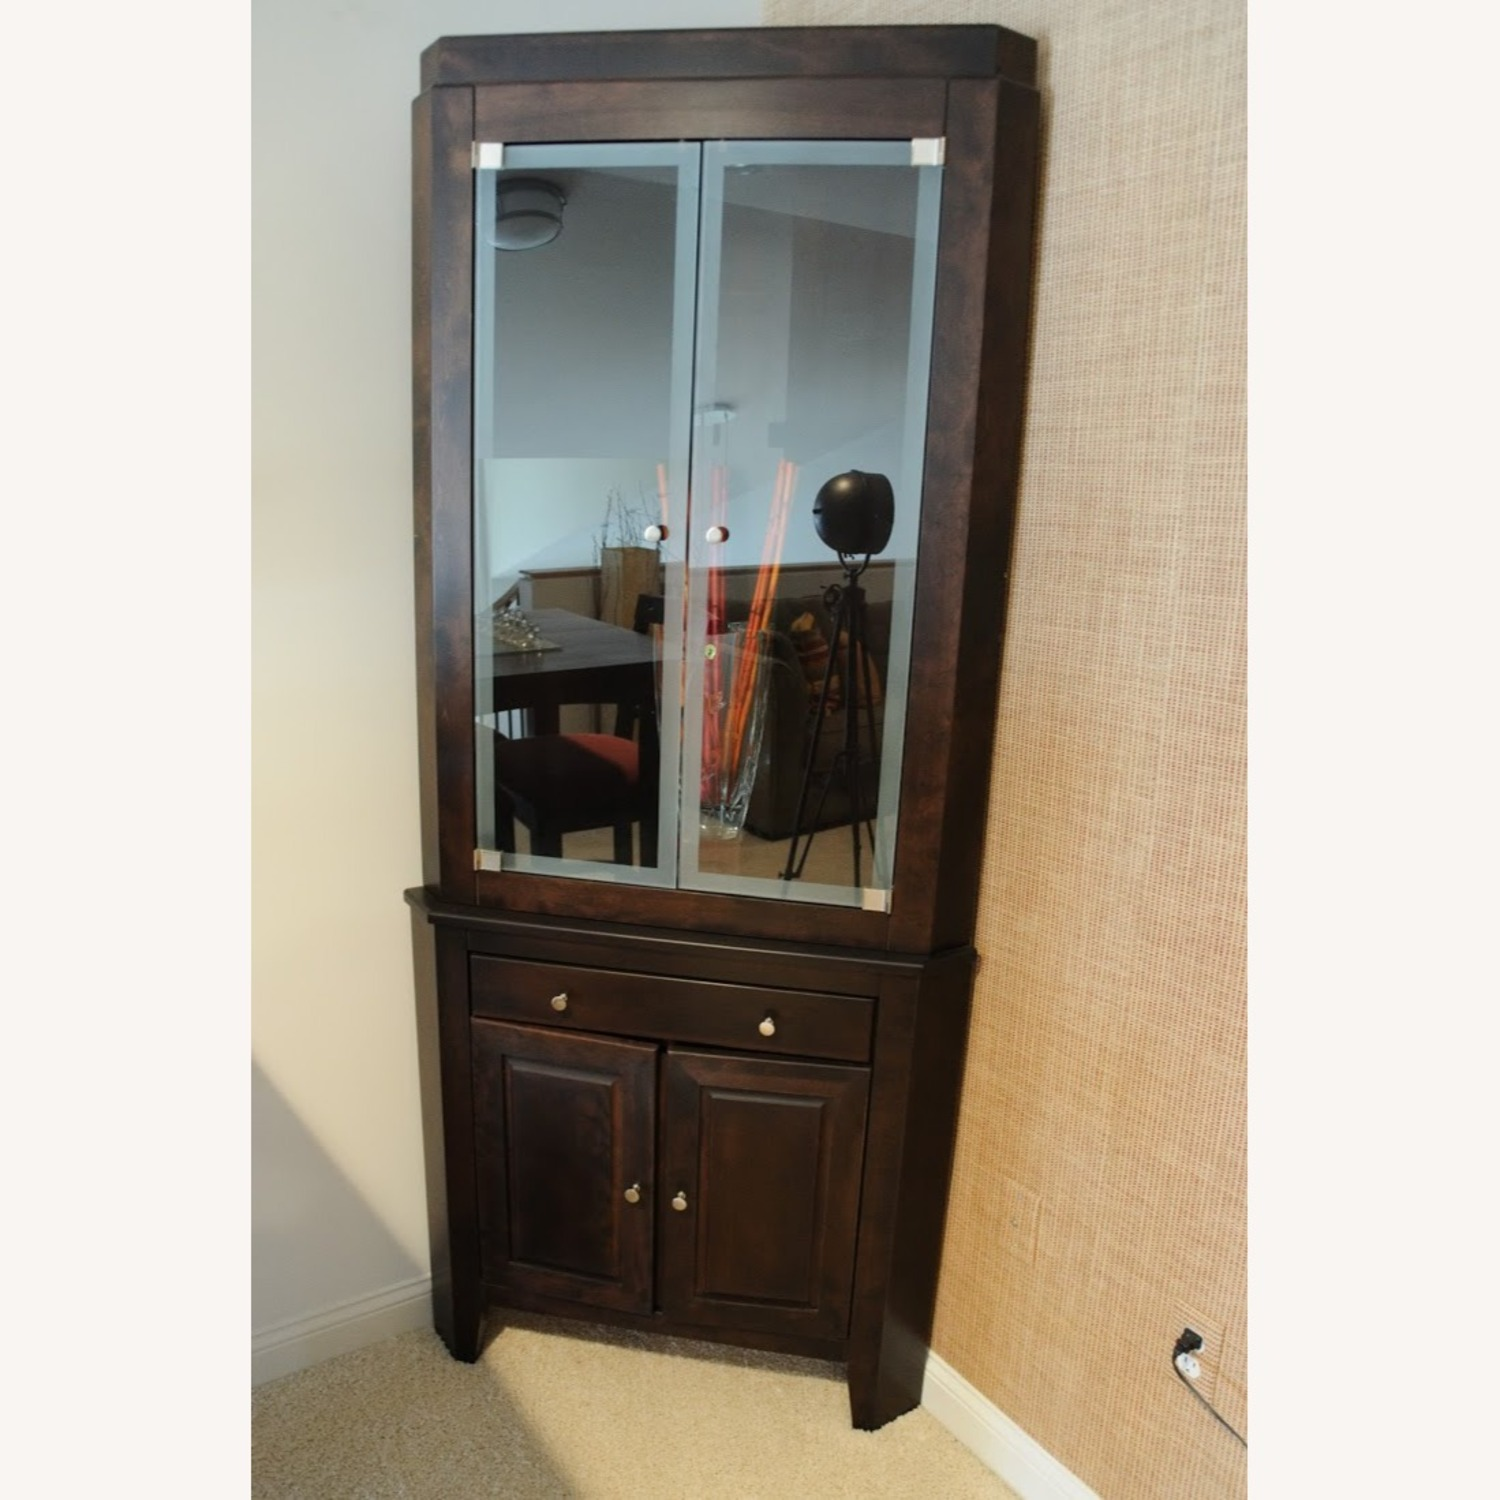 Canadel Corner Curio Cabinet with Light - image-1